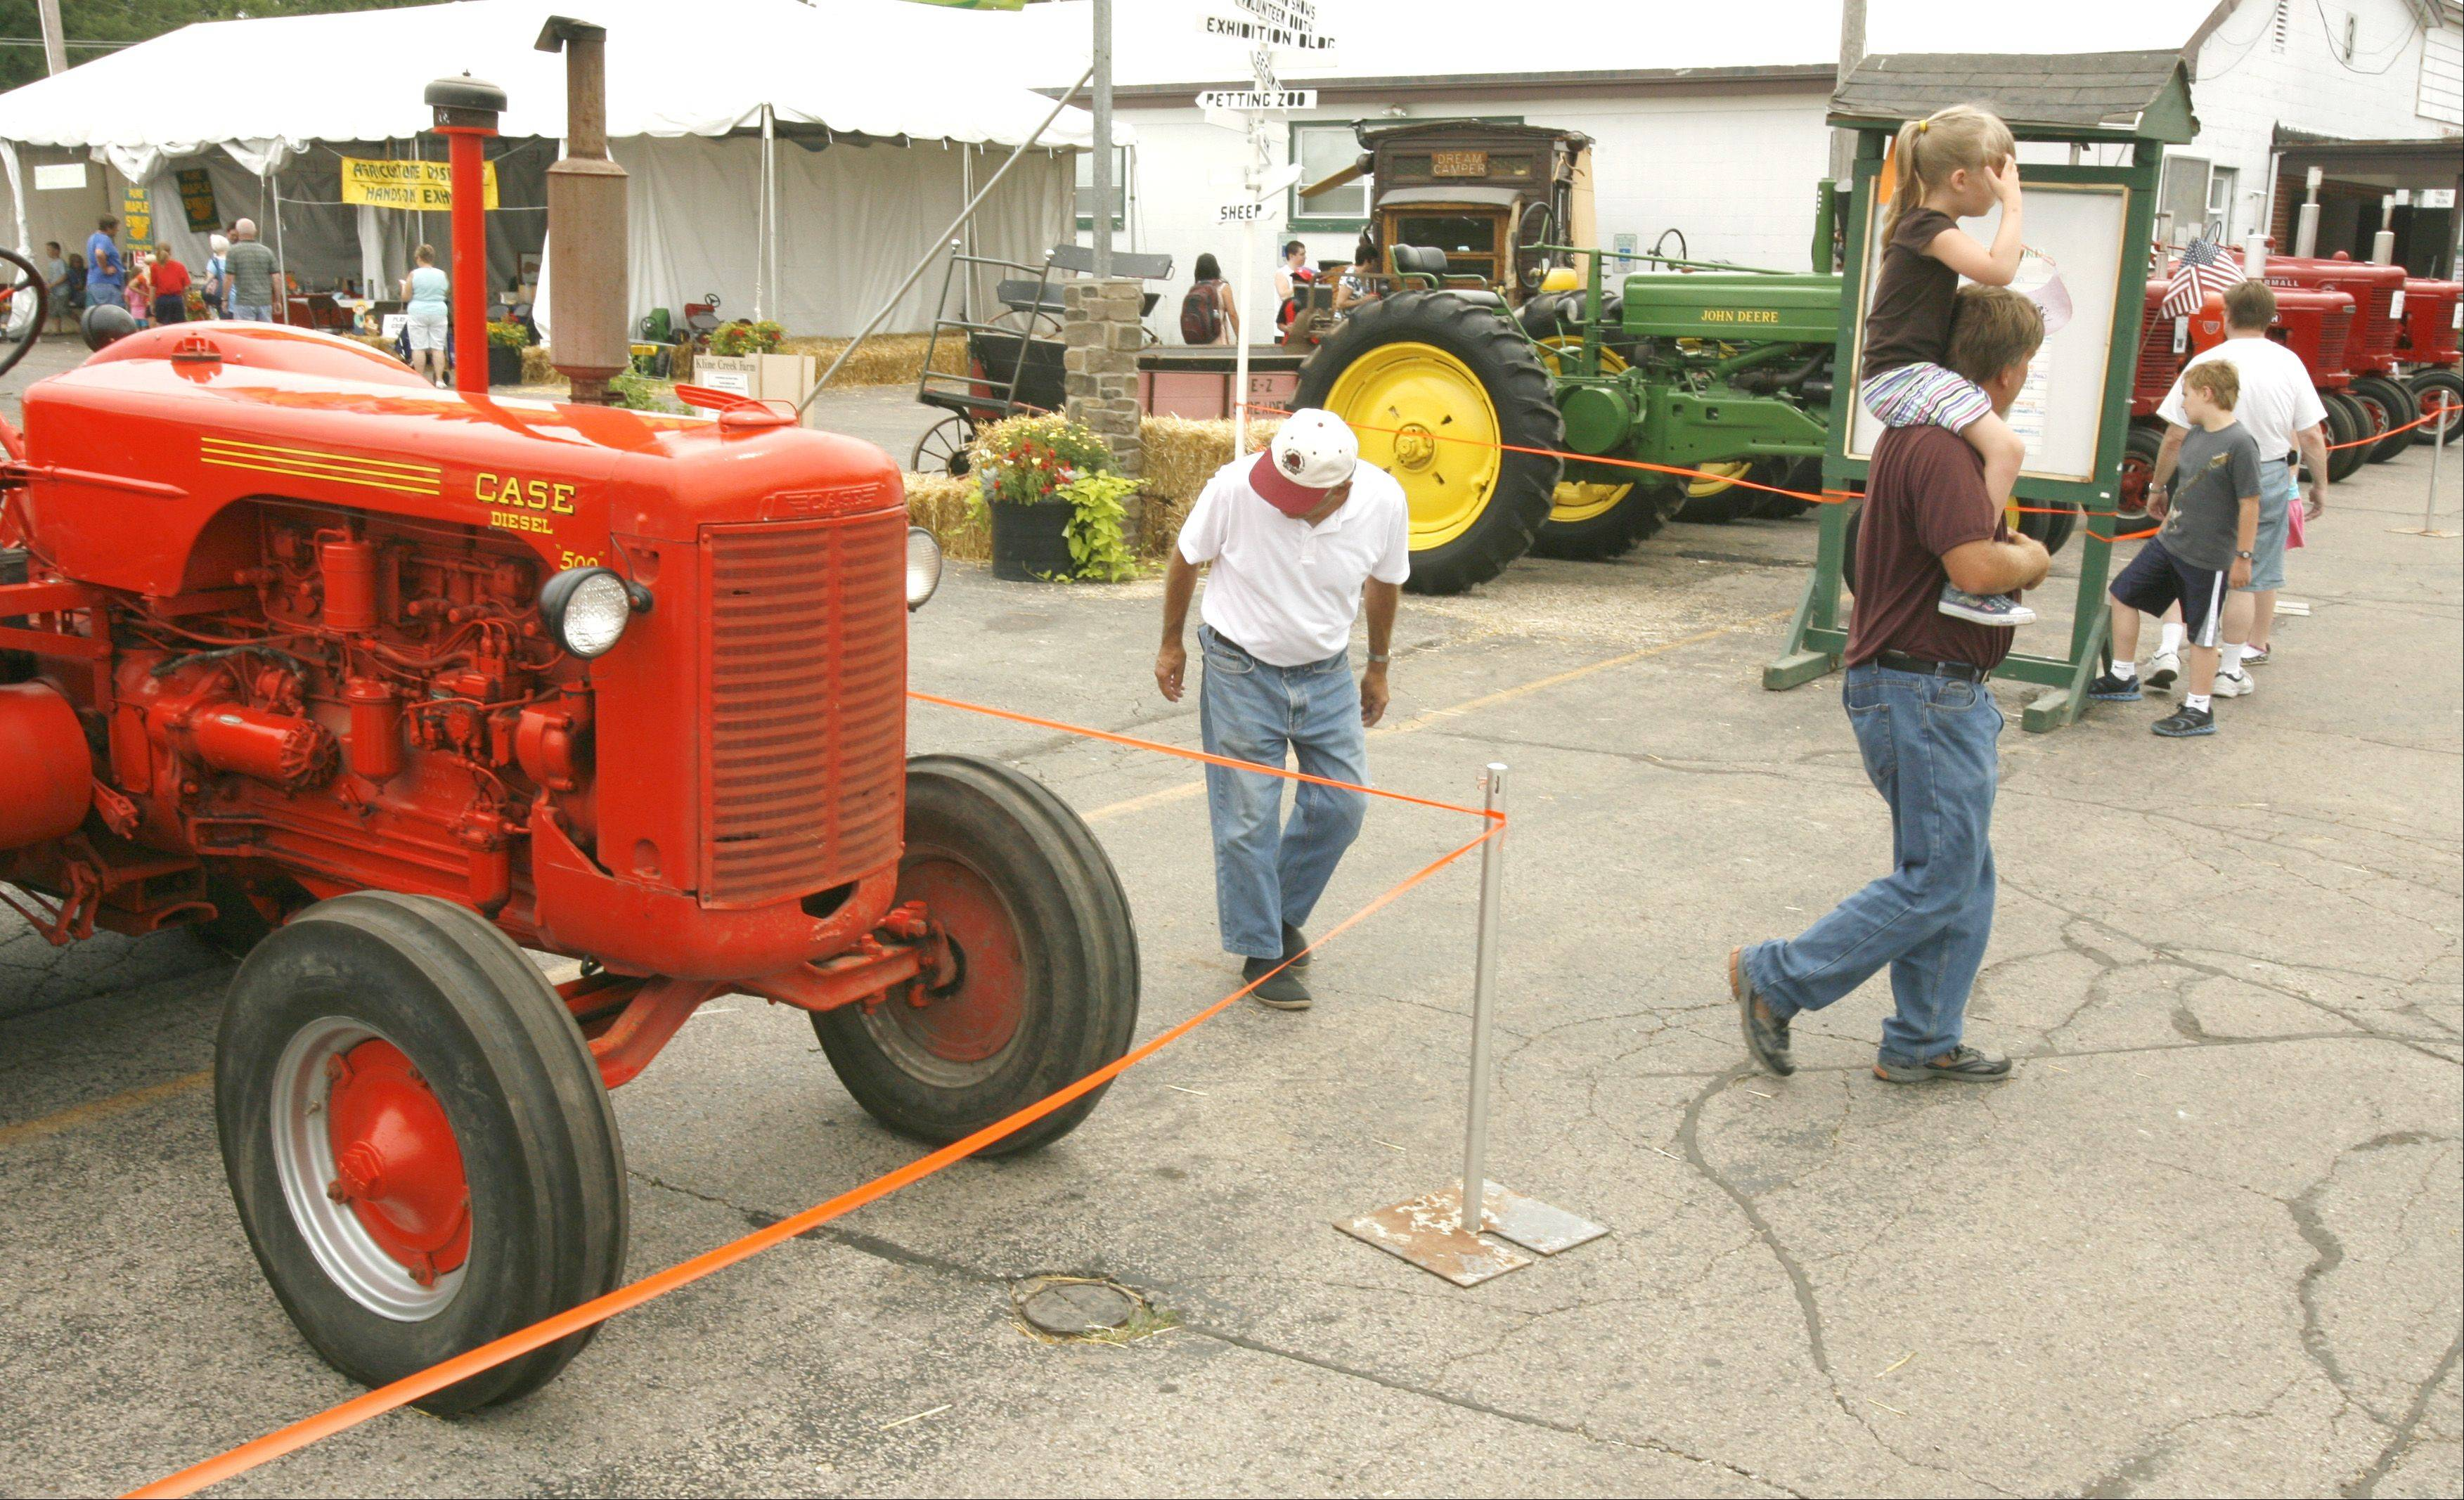 Antique farm machinery, on display as part of the DuPage County Fair.